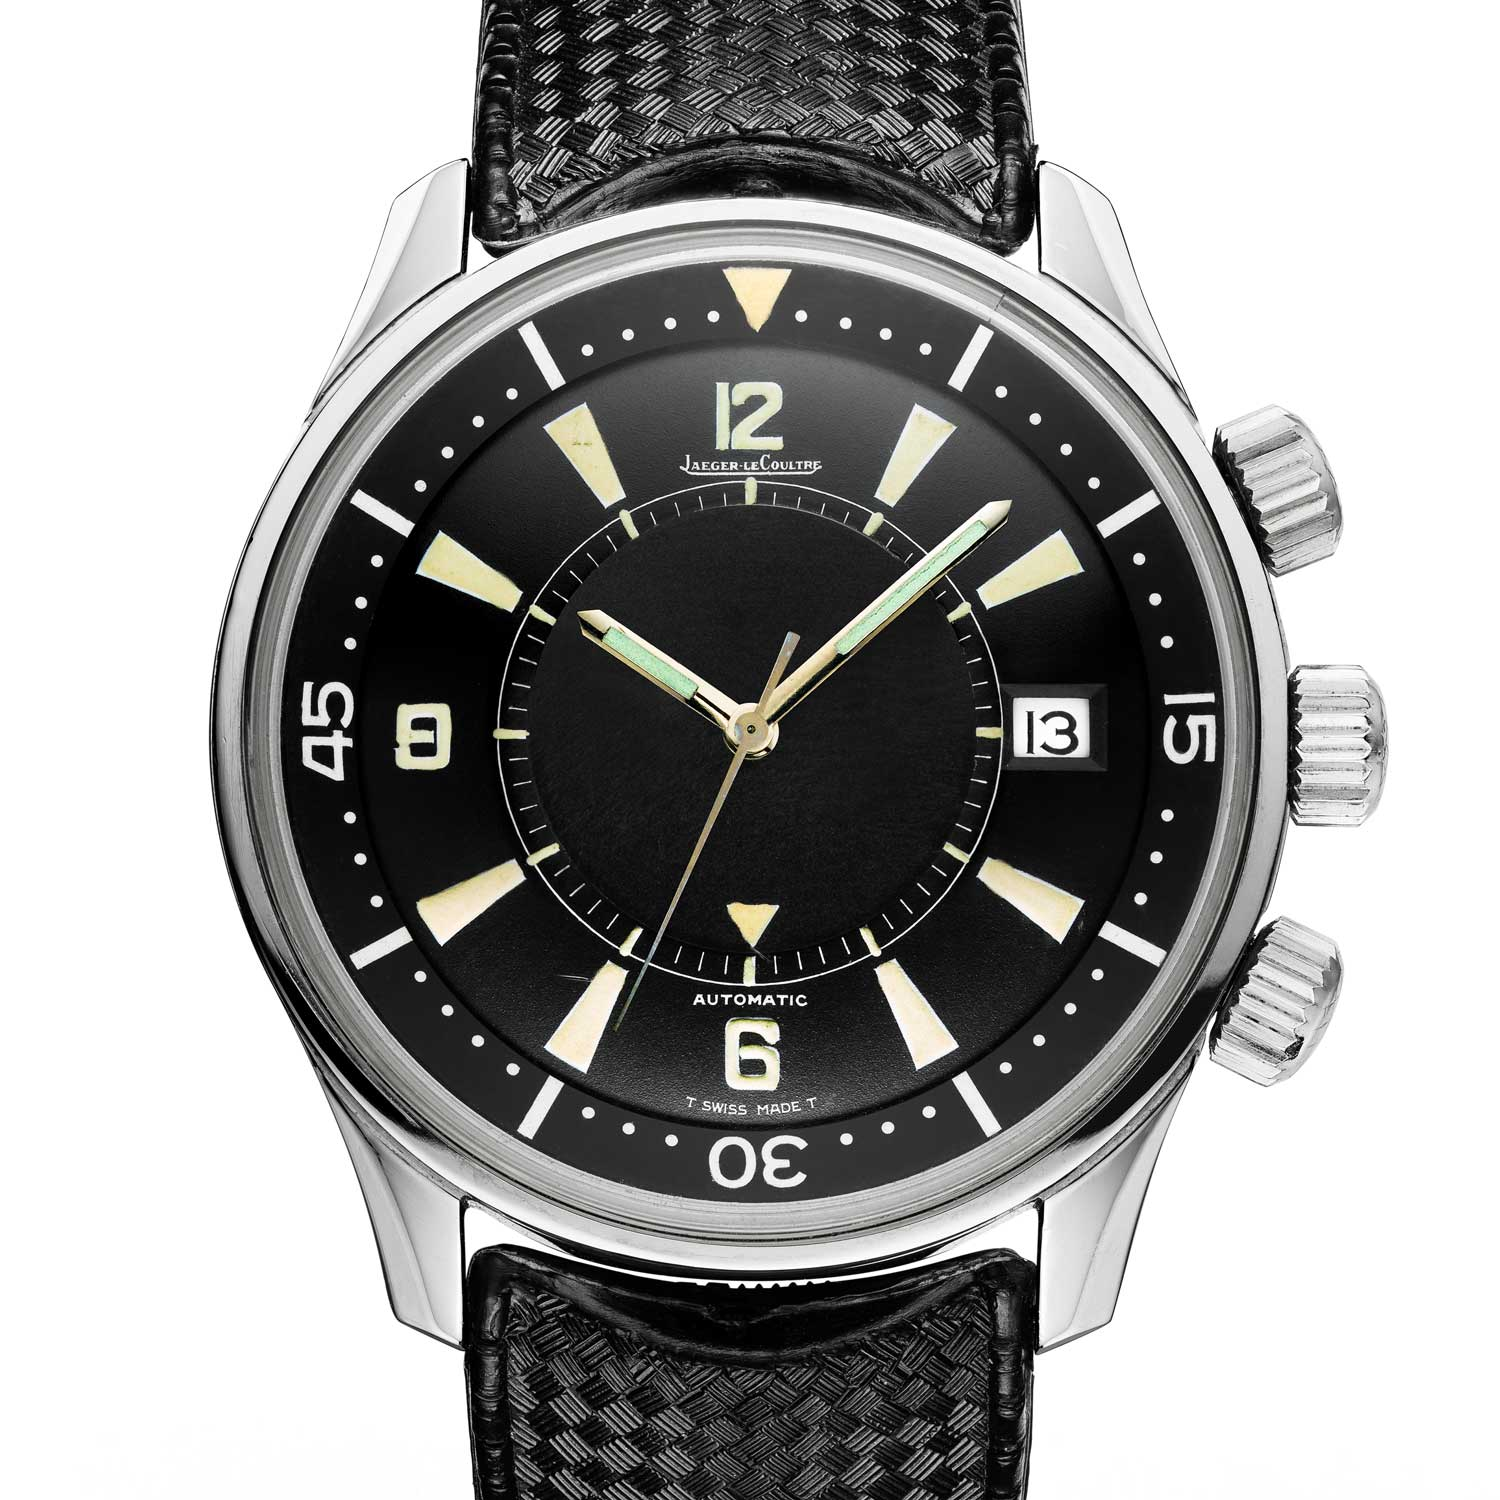 The Memovox Polaris of 1968 was a rare watch with a run of only 1,714 pieces.